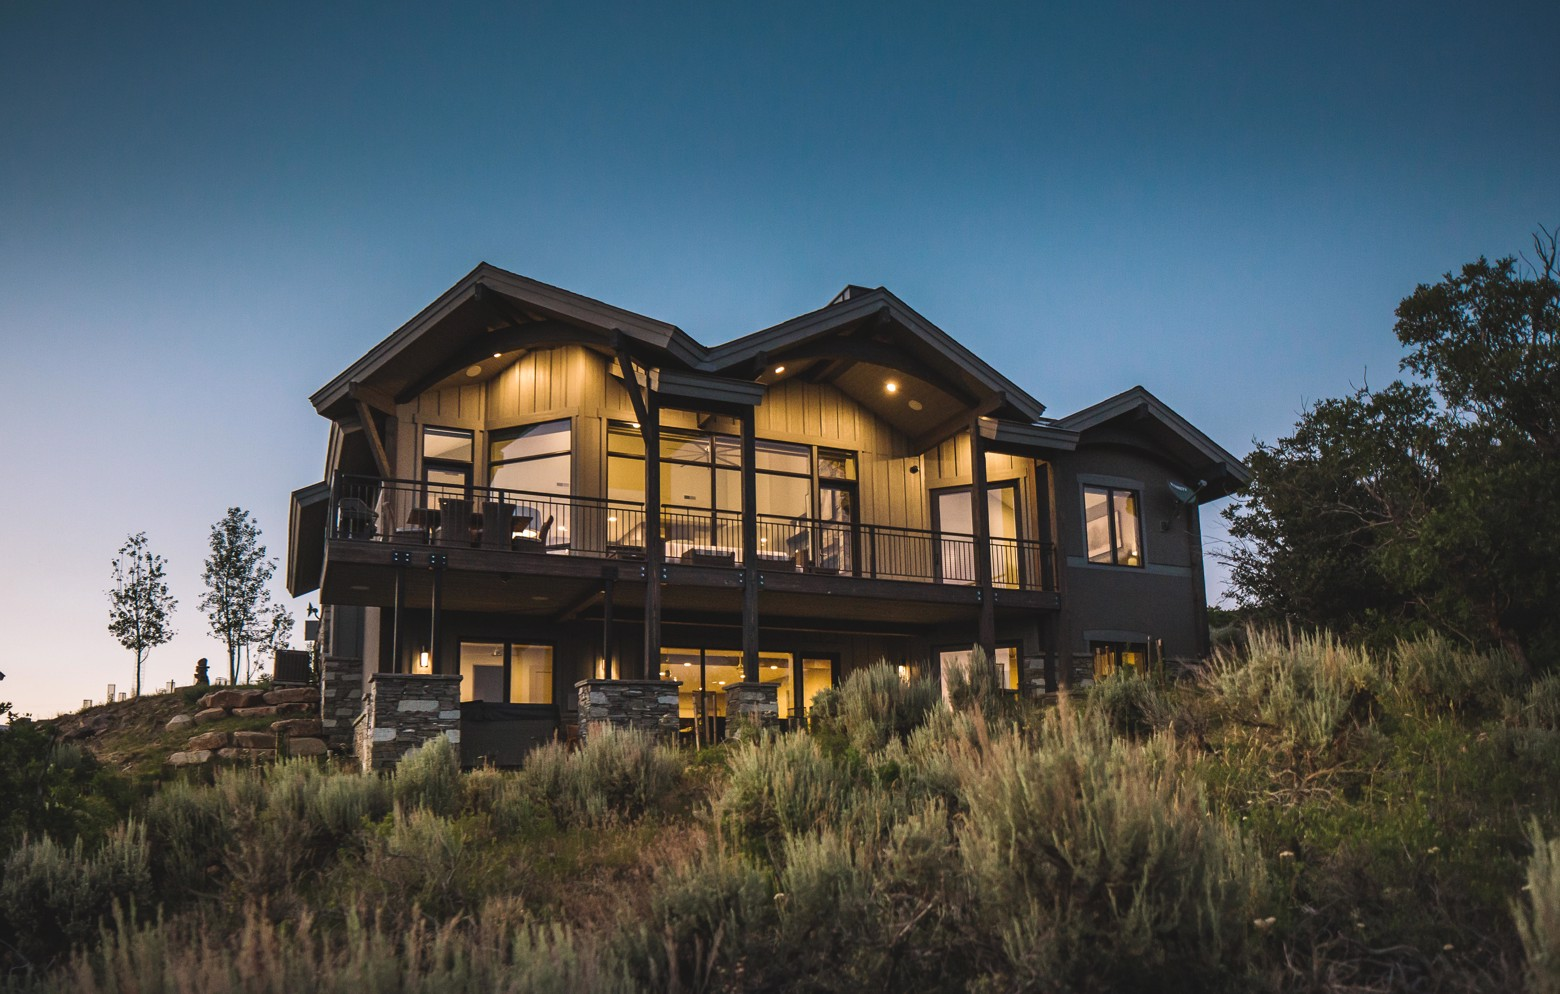 Utah Vacation Home with Natural Beauty Inside & Out image